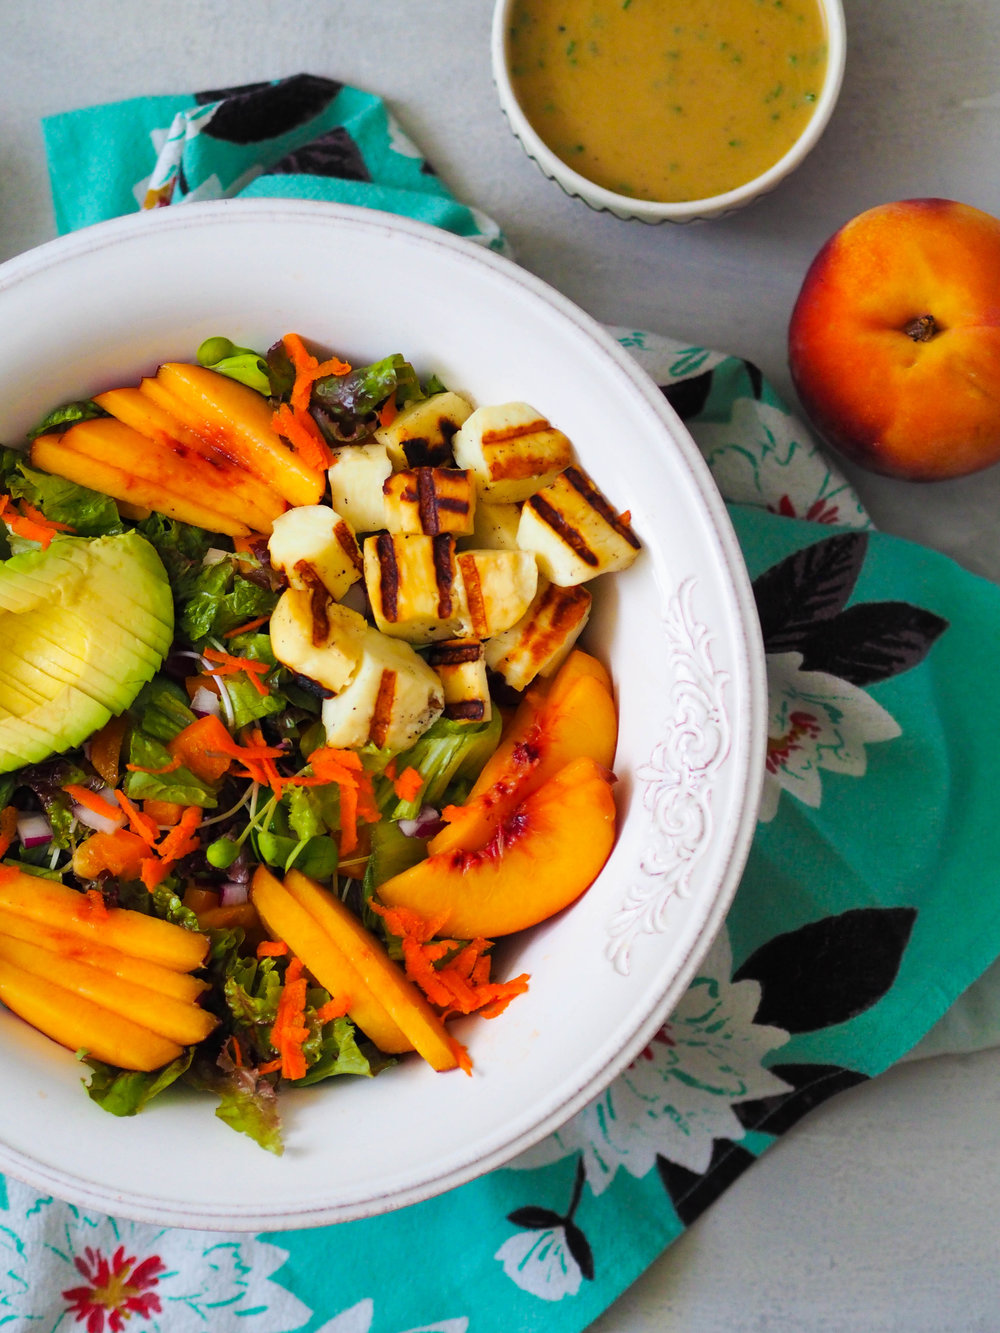 Make this summery grilled halloumi and peach salad with lemon-tahini dressing! Easy and packed with fresh flavor! #salad #vegetarian #healthyrecipe #halloumi #peach #summer